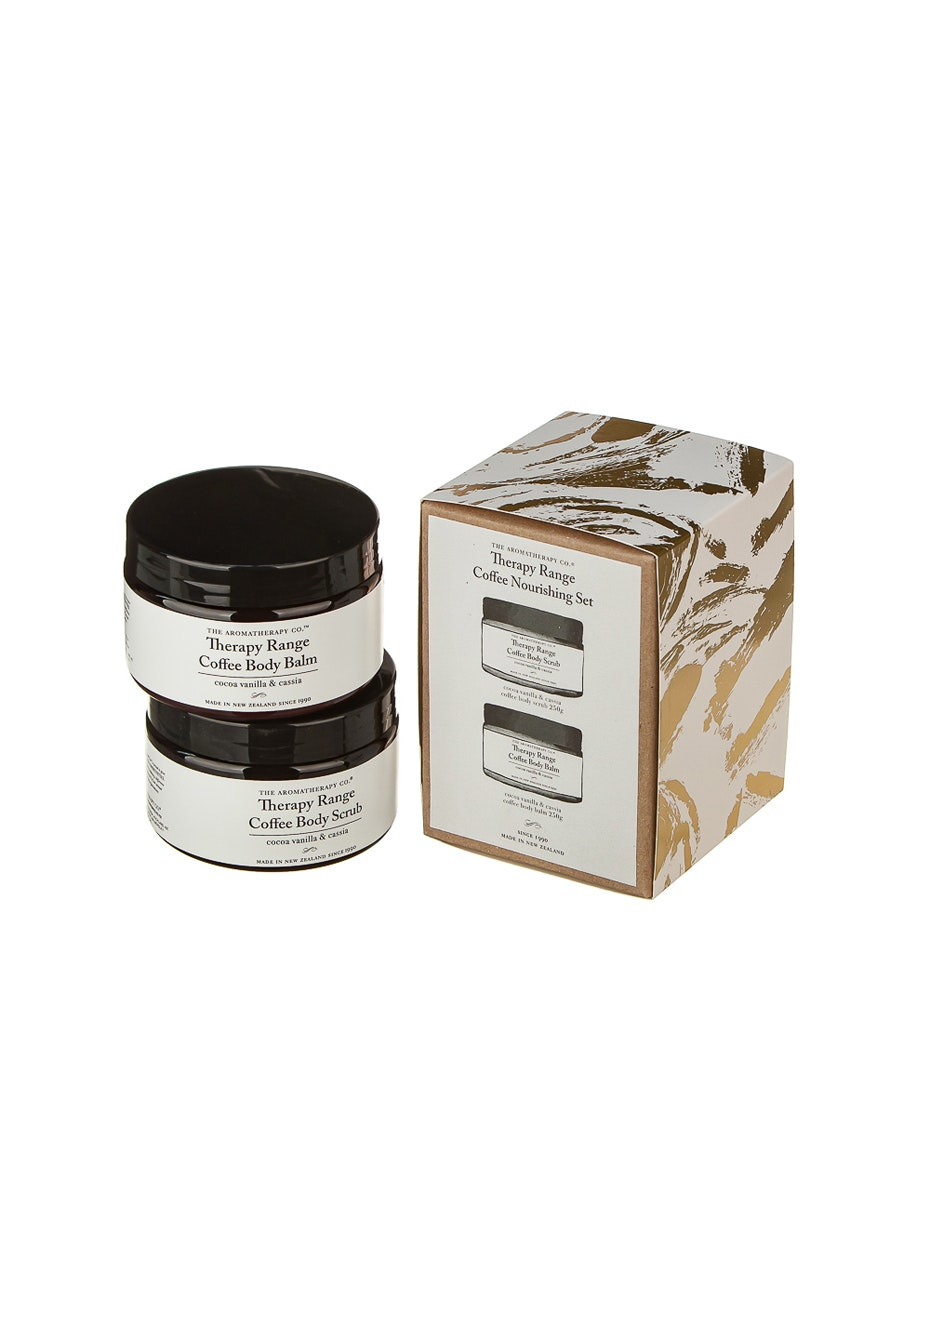 The Aromatherapy Co.  Coffee Nourishing Gift Set - Cocoa Vanilla & Cassia and coffee